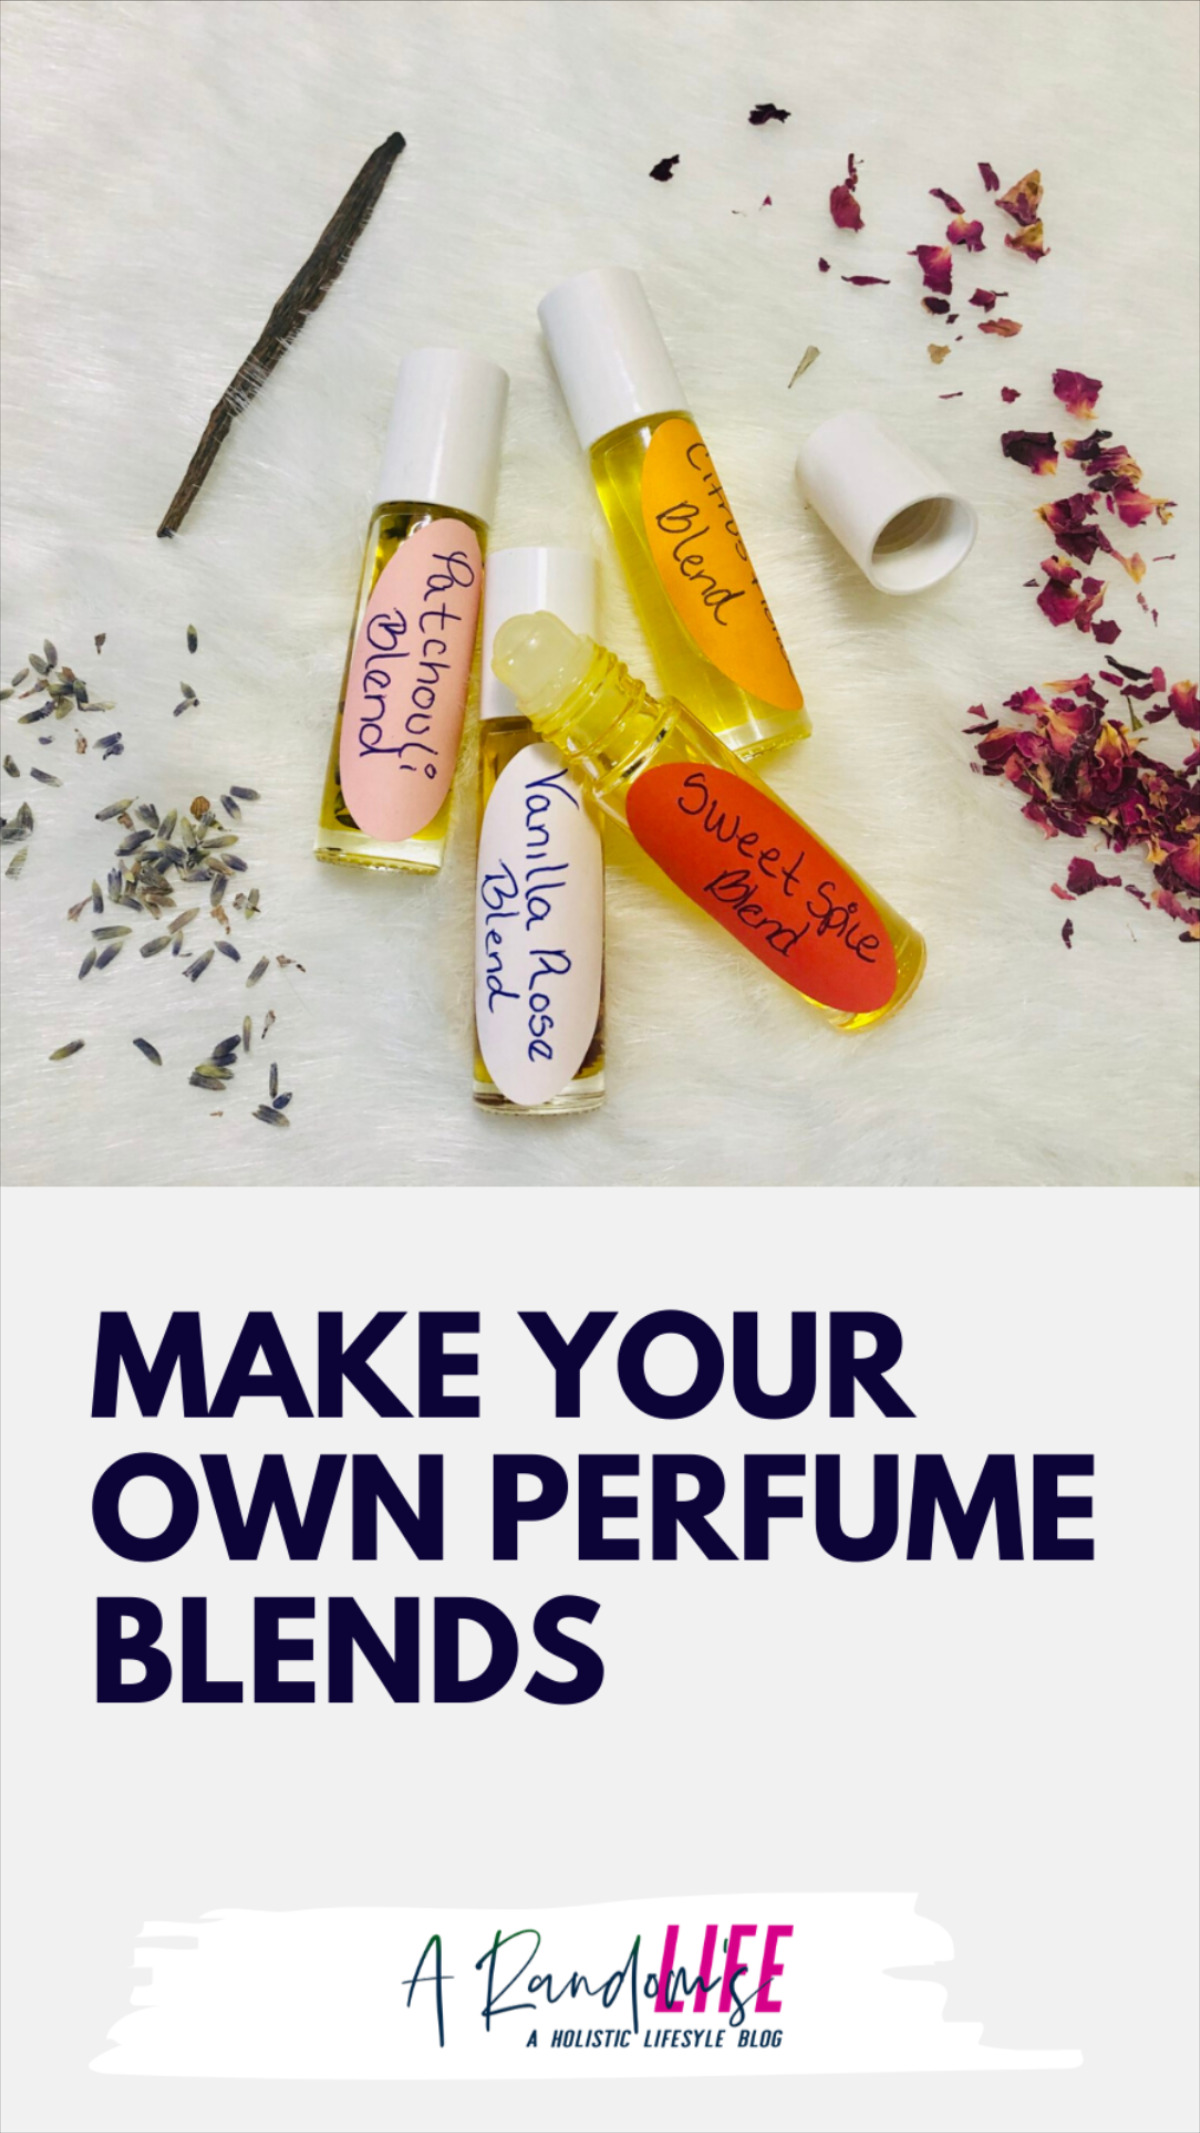 Make Your Own Perfume Blends